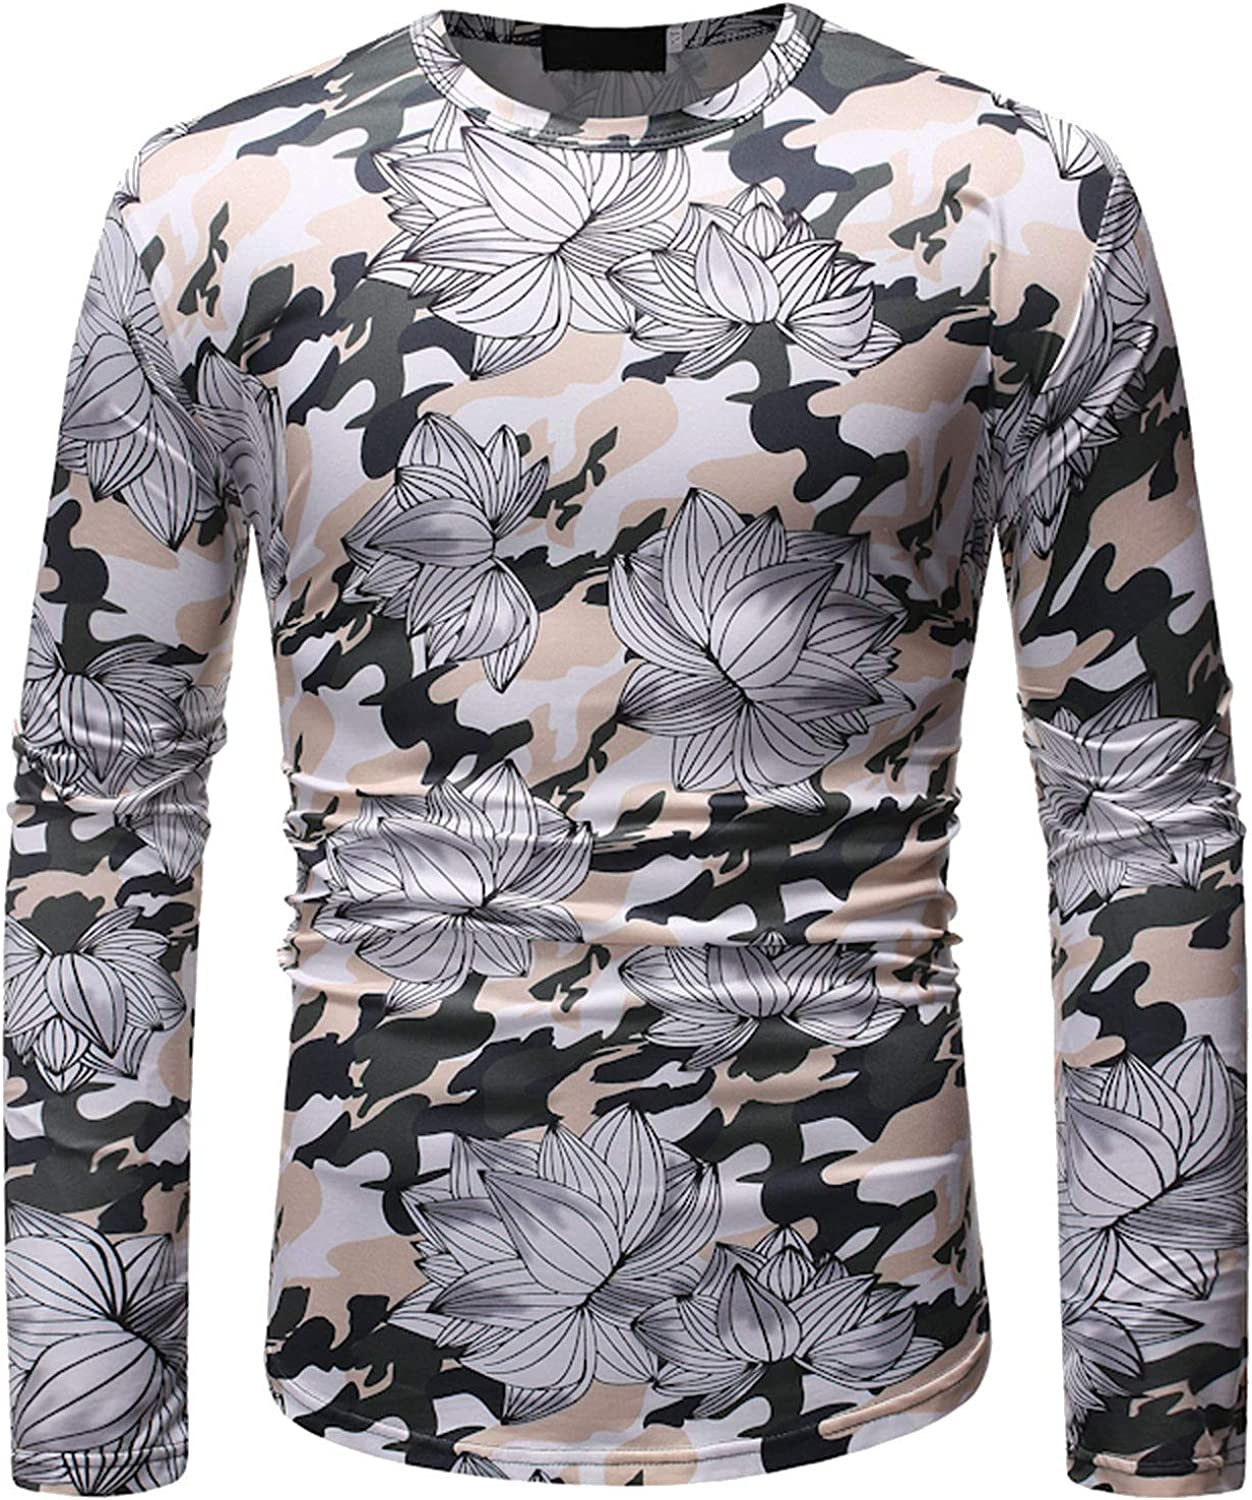 Casual Long Sleeve Shirts for Men Women Color Printed Shirts Spring Round Neck Fitness Tops Blouse for Men Women